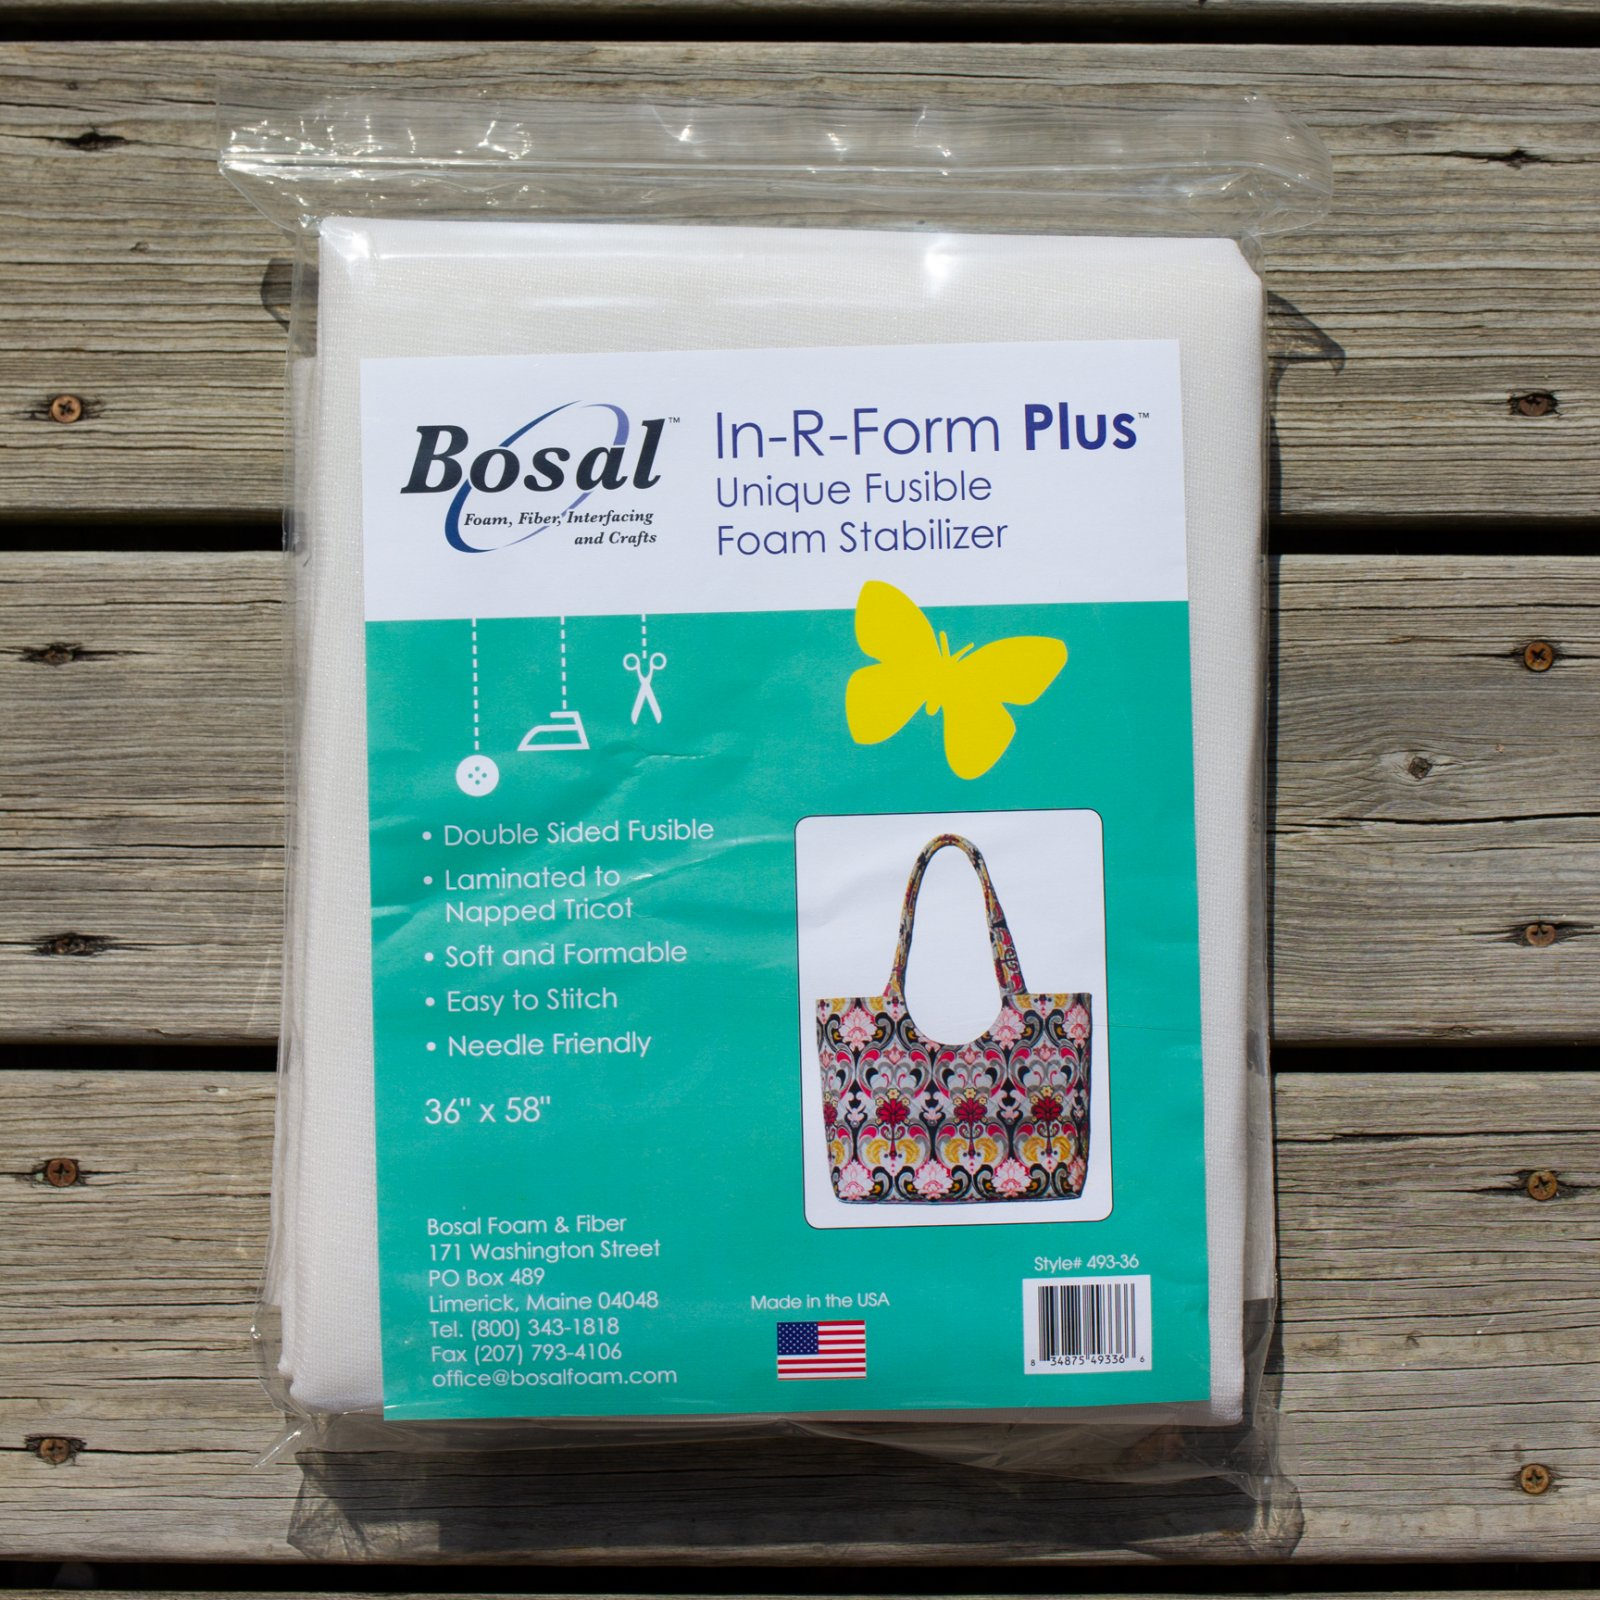 Bosal - In-R-Form Plus Double Sided Fusible Foam Stabilizer (1 yd pack)